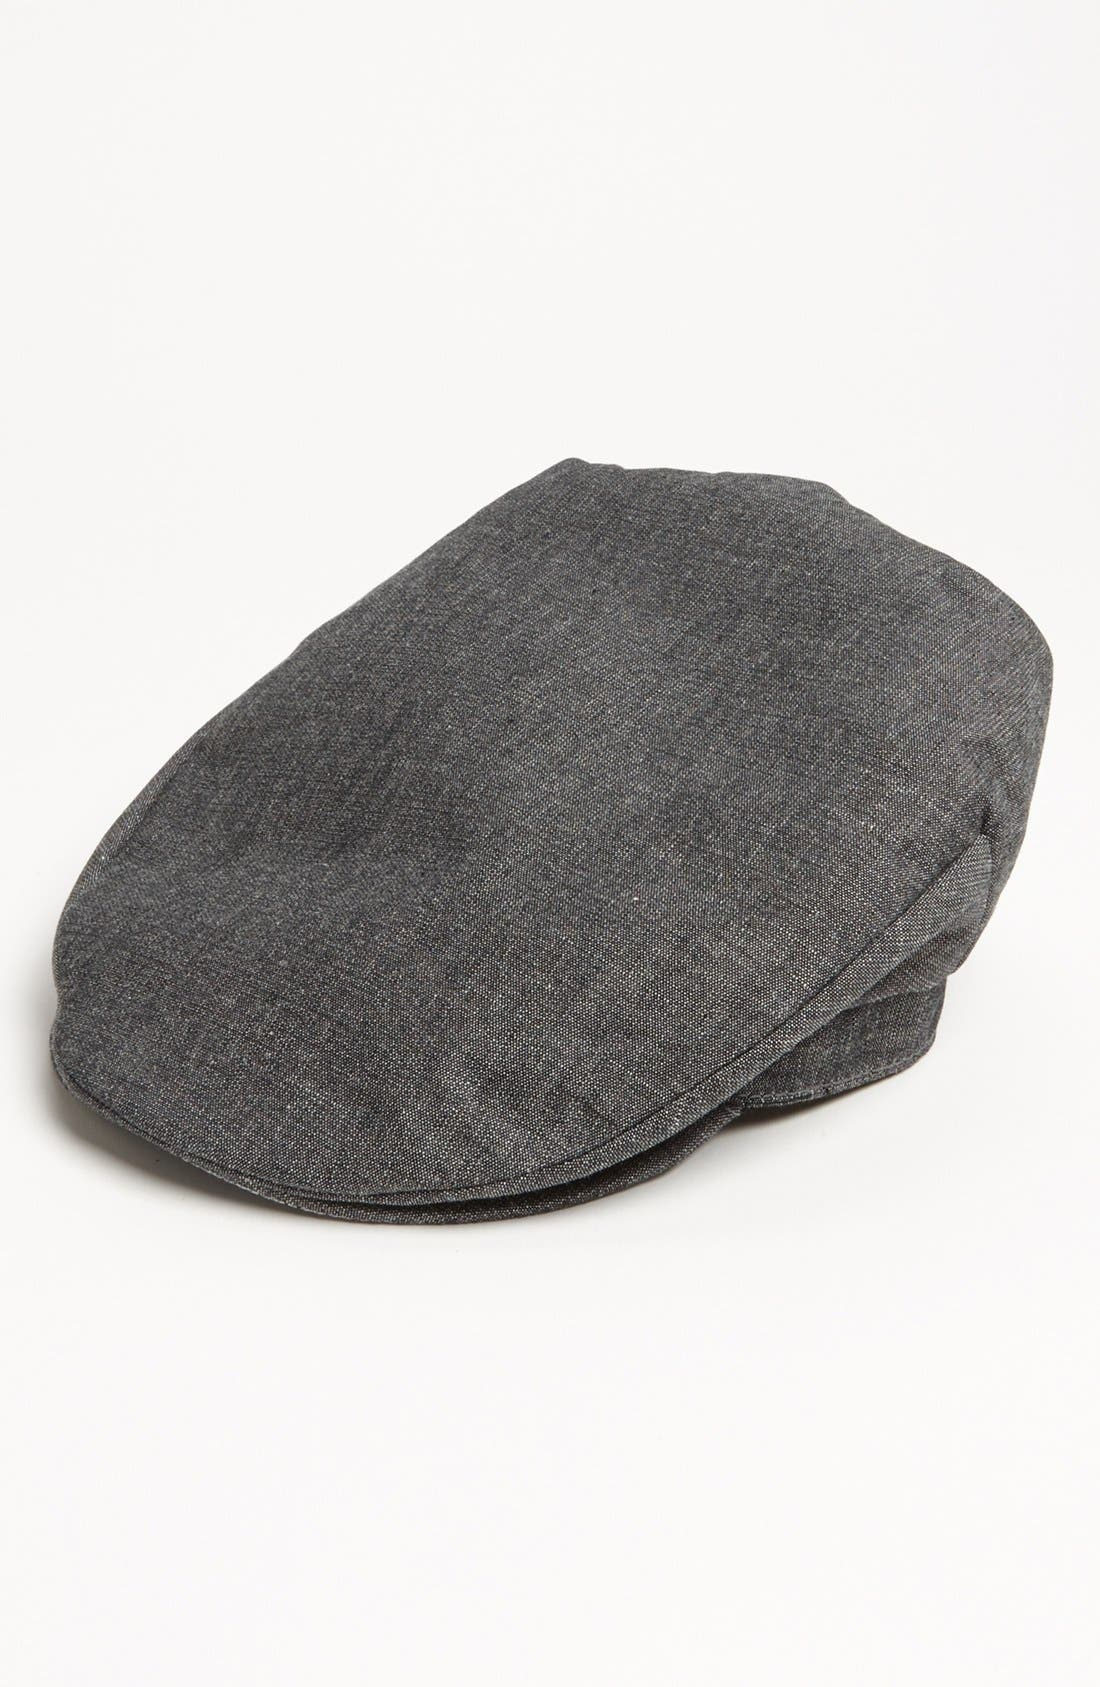 Alternate Image 1 Selected - Goorin Brothers 'Isle of Wight' Driving Cap